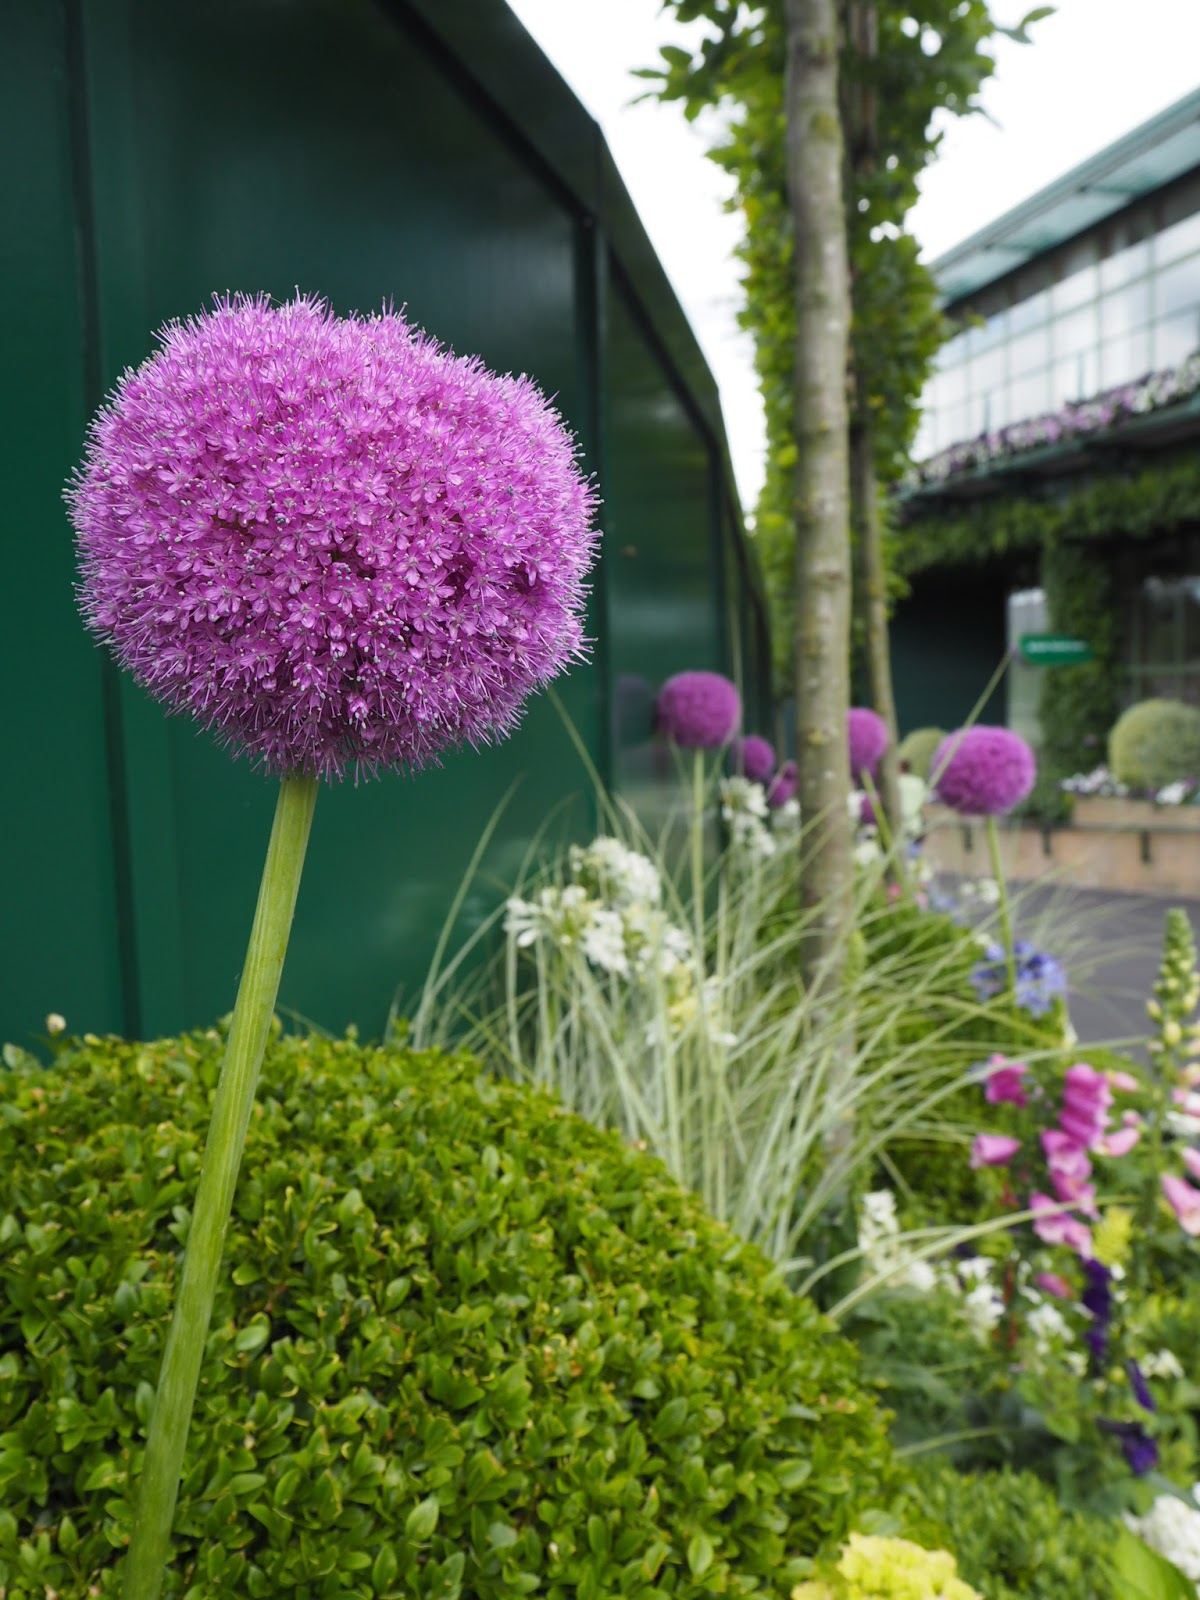 Wimbledon Allium Purple and Green Flowers of the grounds